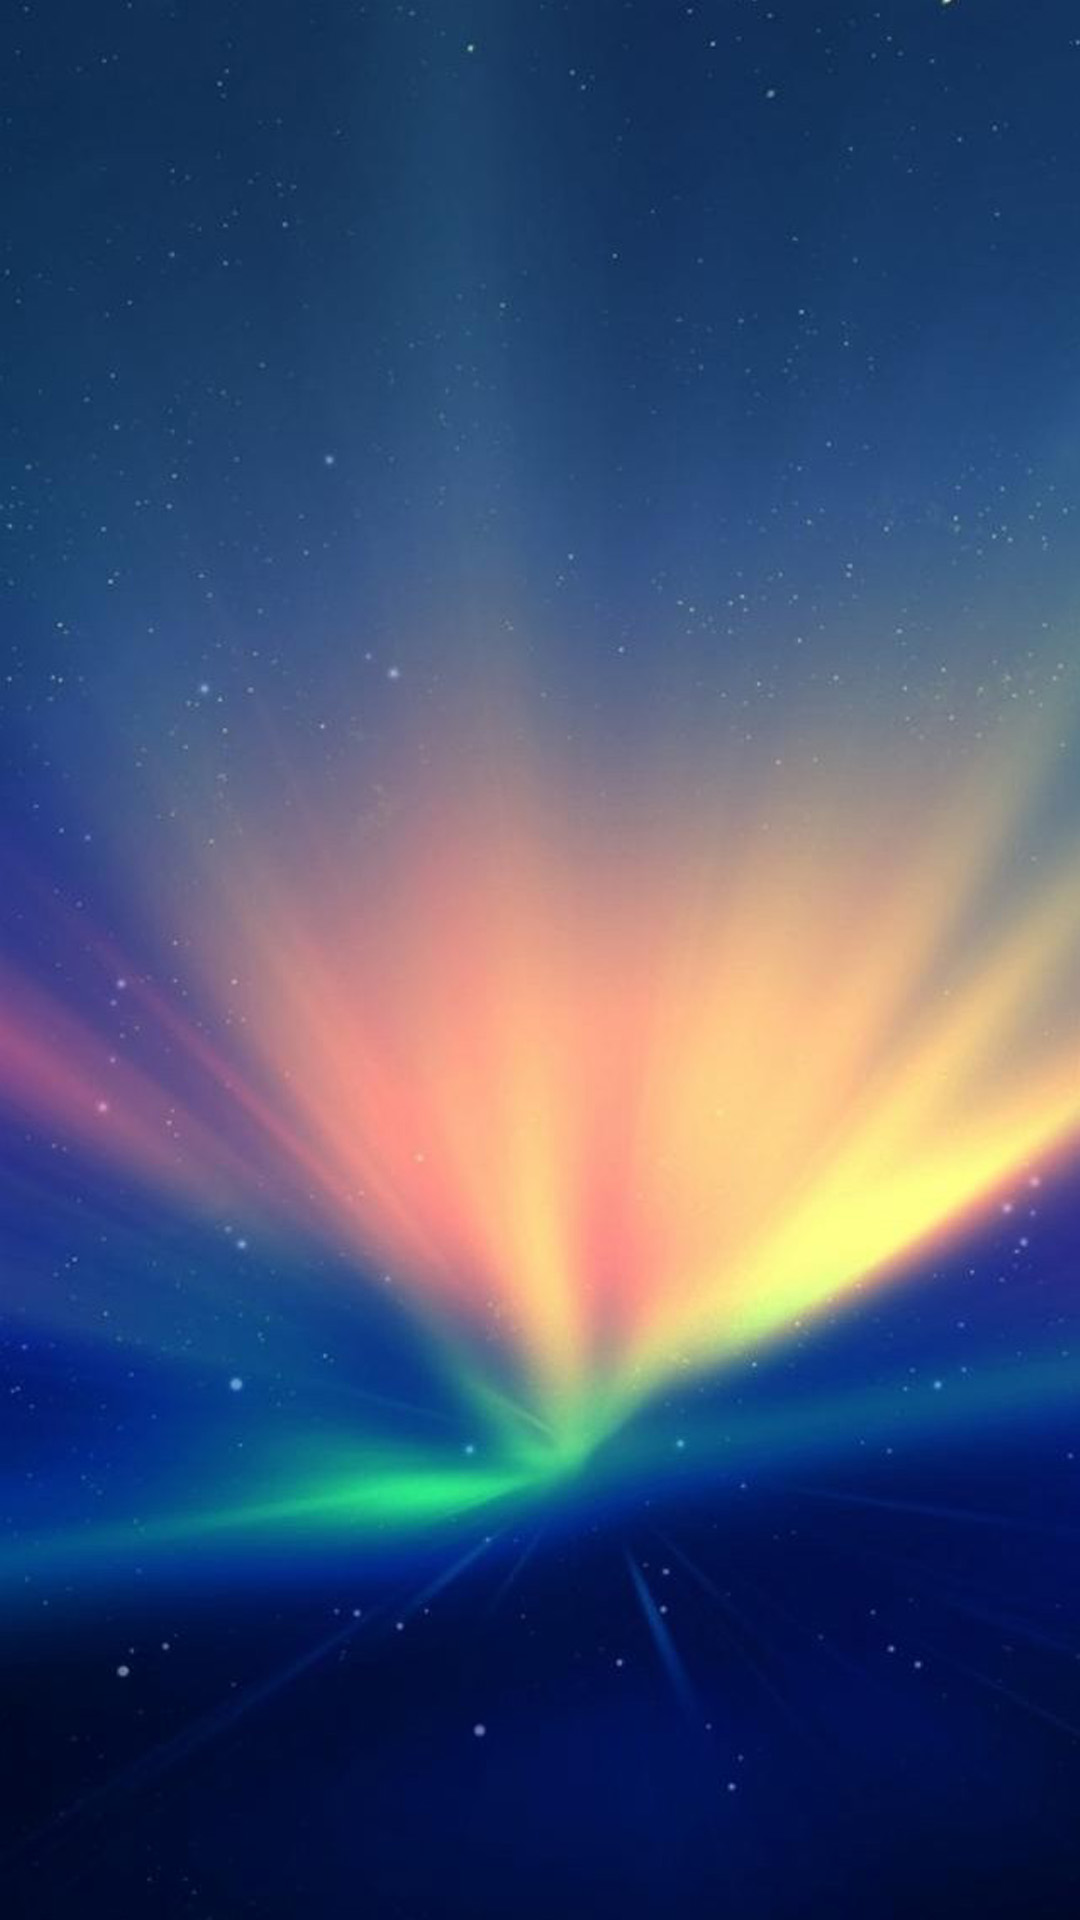 Htc One M8 Wallpaper HD